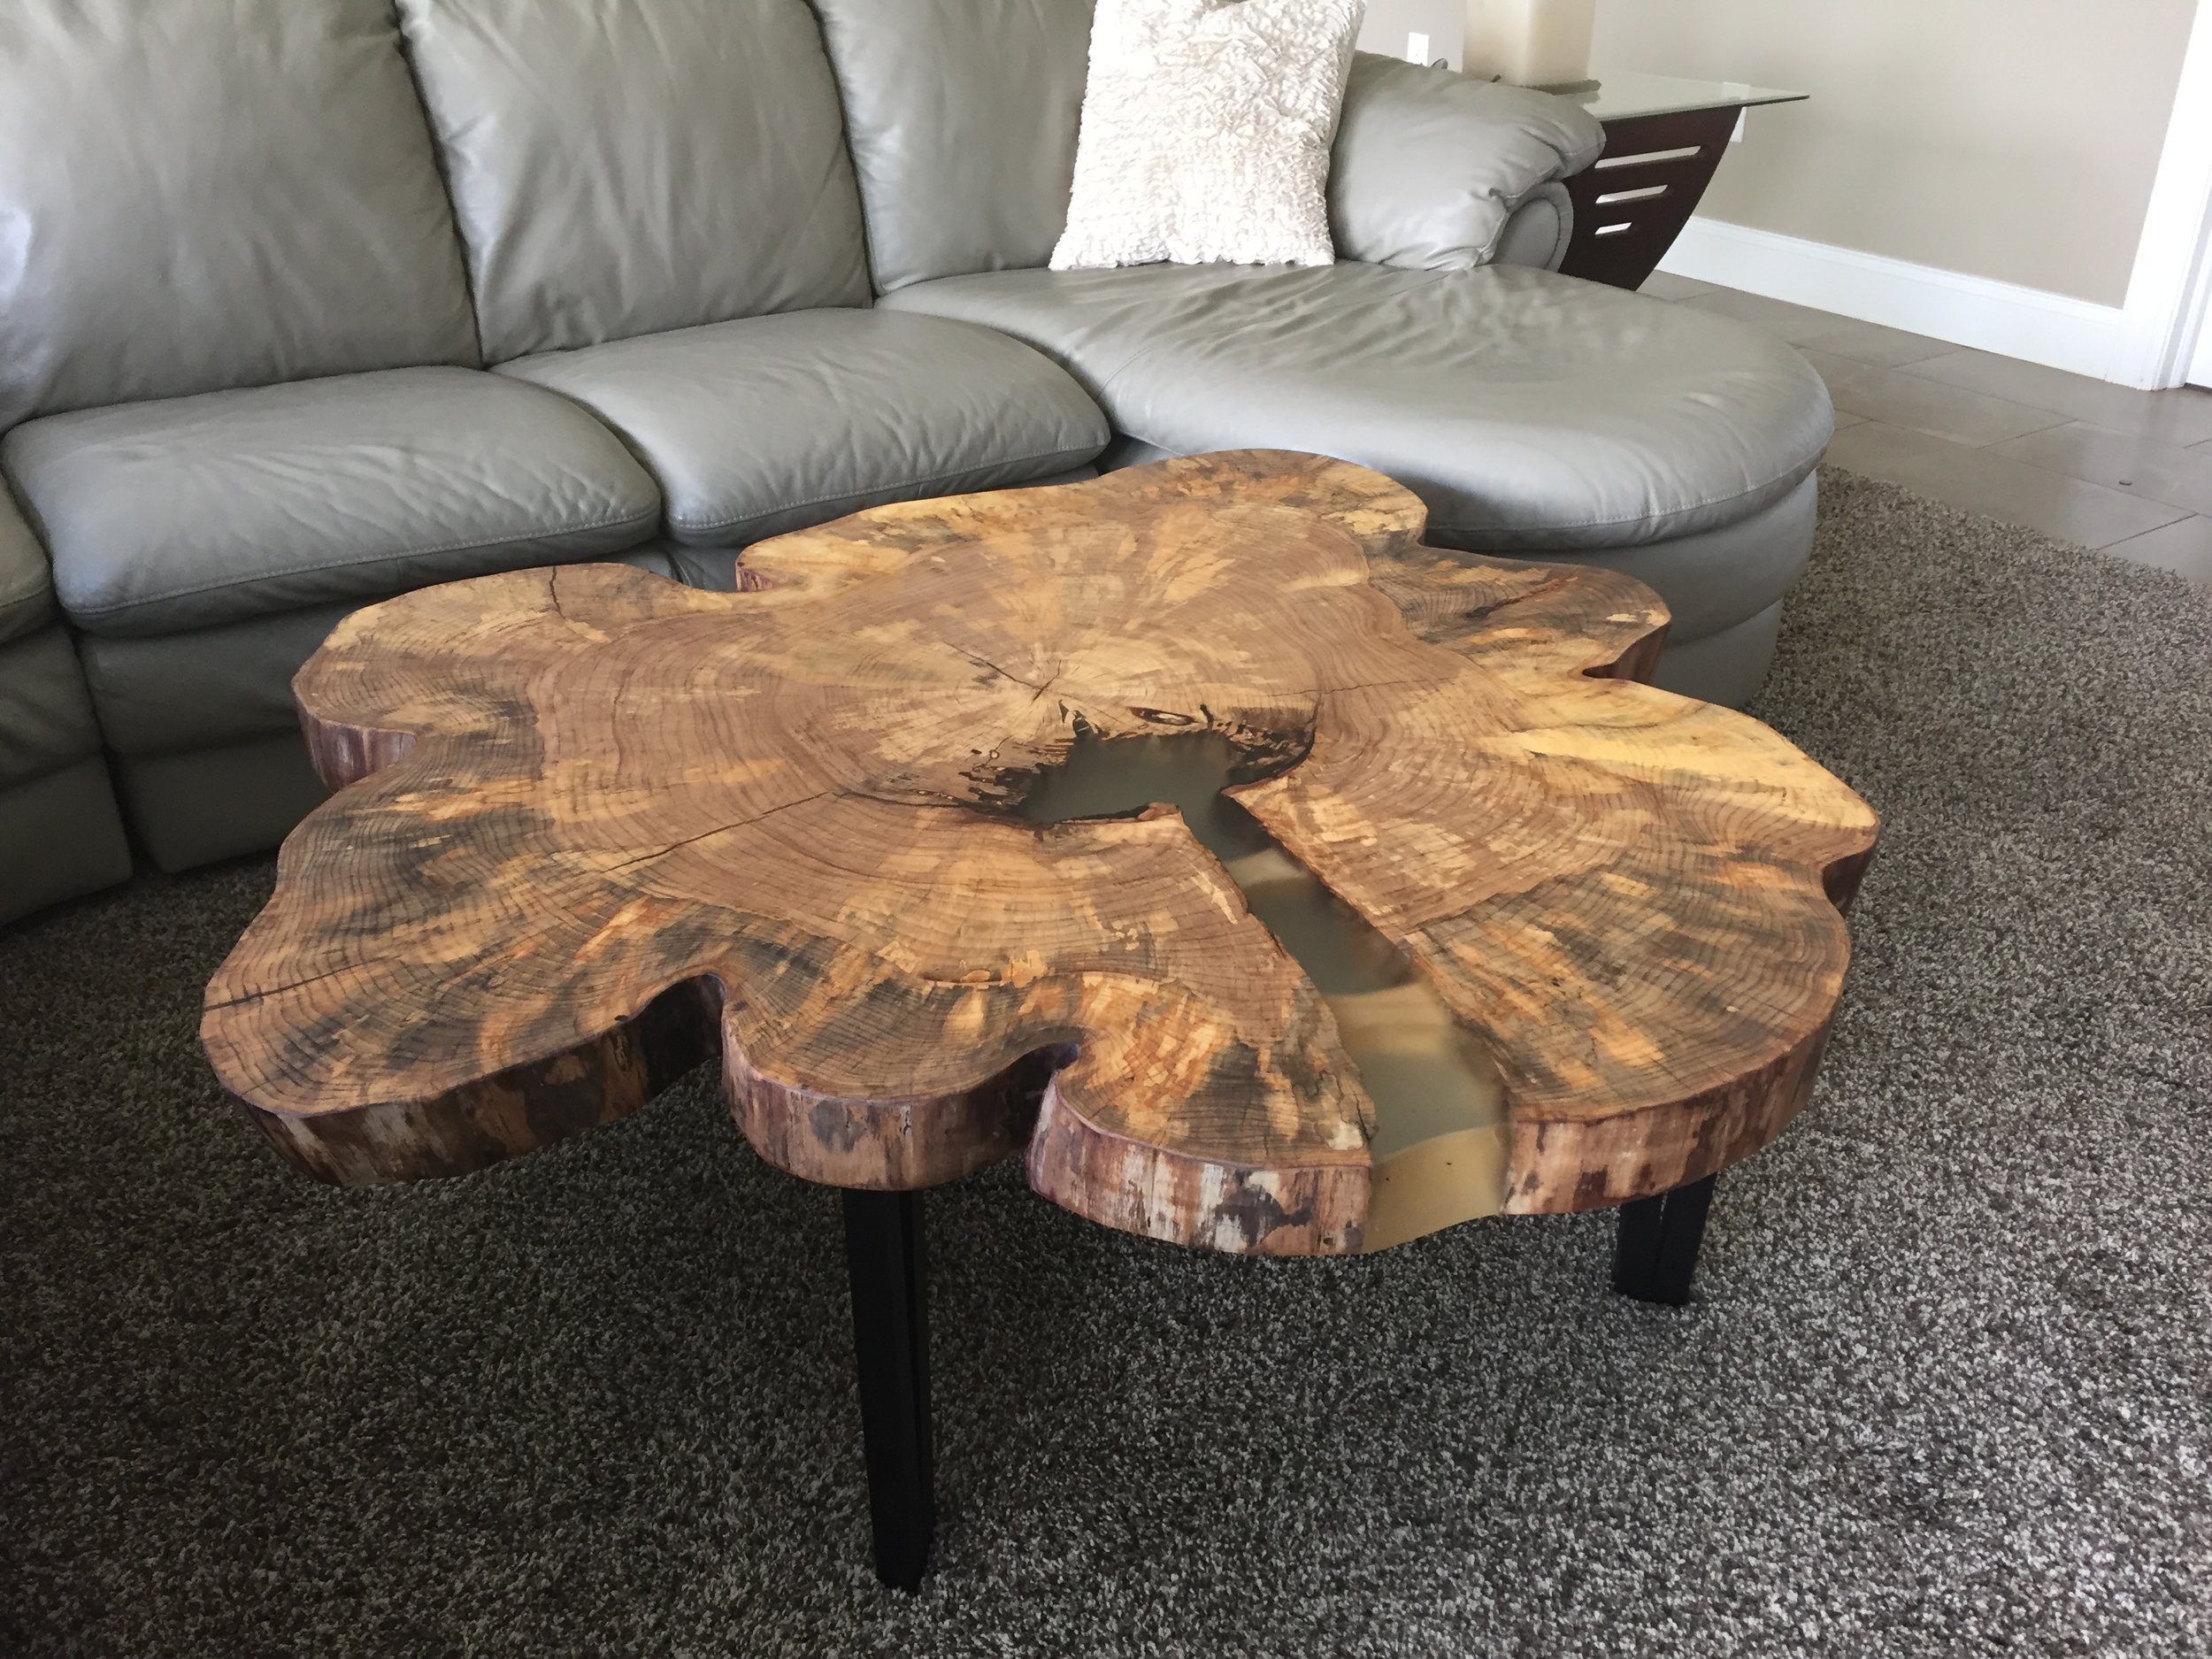 elm round coffee table 360 degree live edge tree purposed detroit michigan live edge slabs reclaimed wood